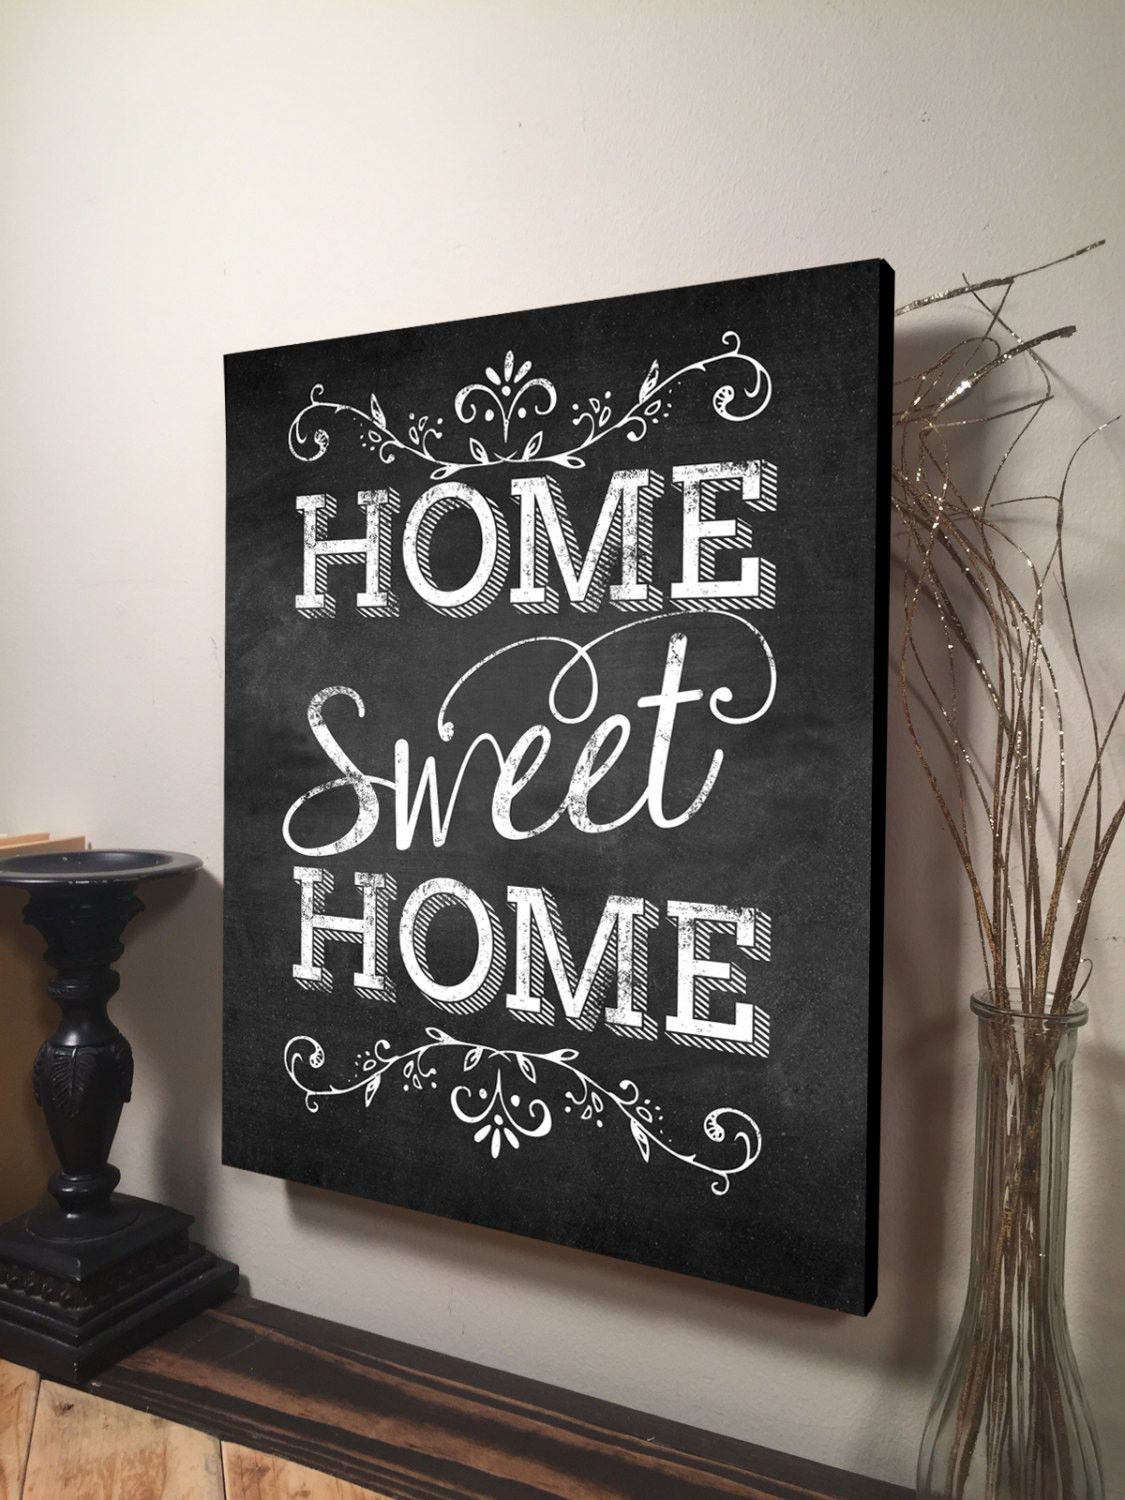 Home sweet home sign inspirational quote family quote for Home decor quotes signs